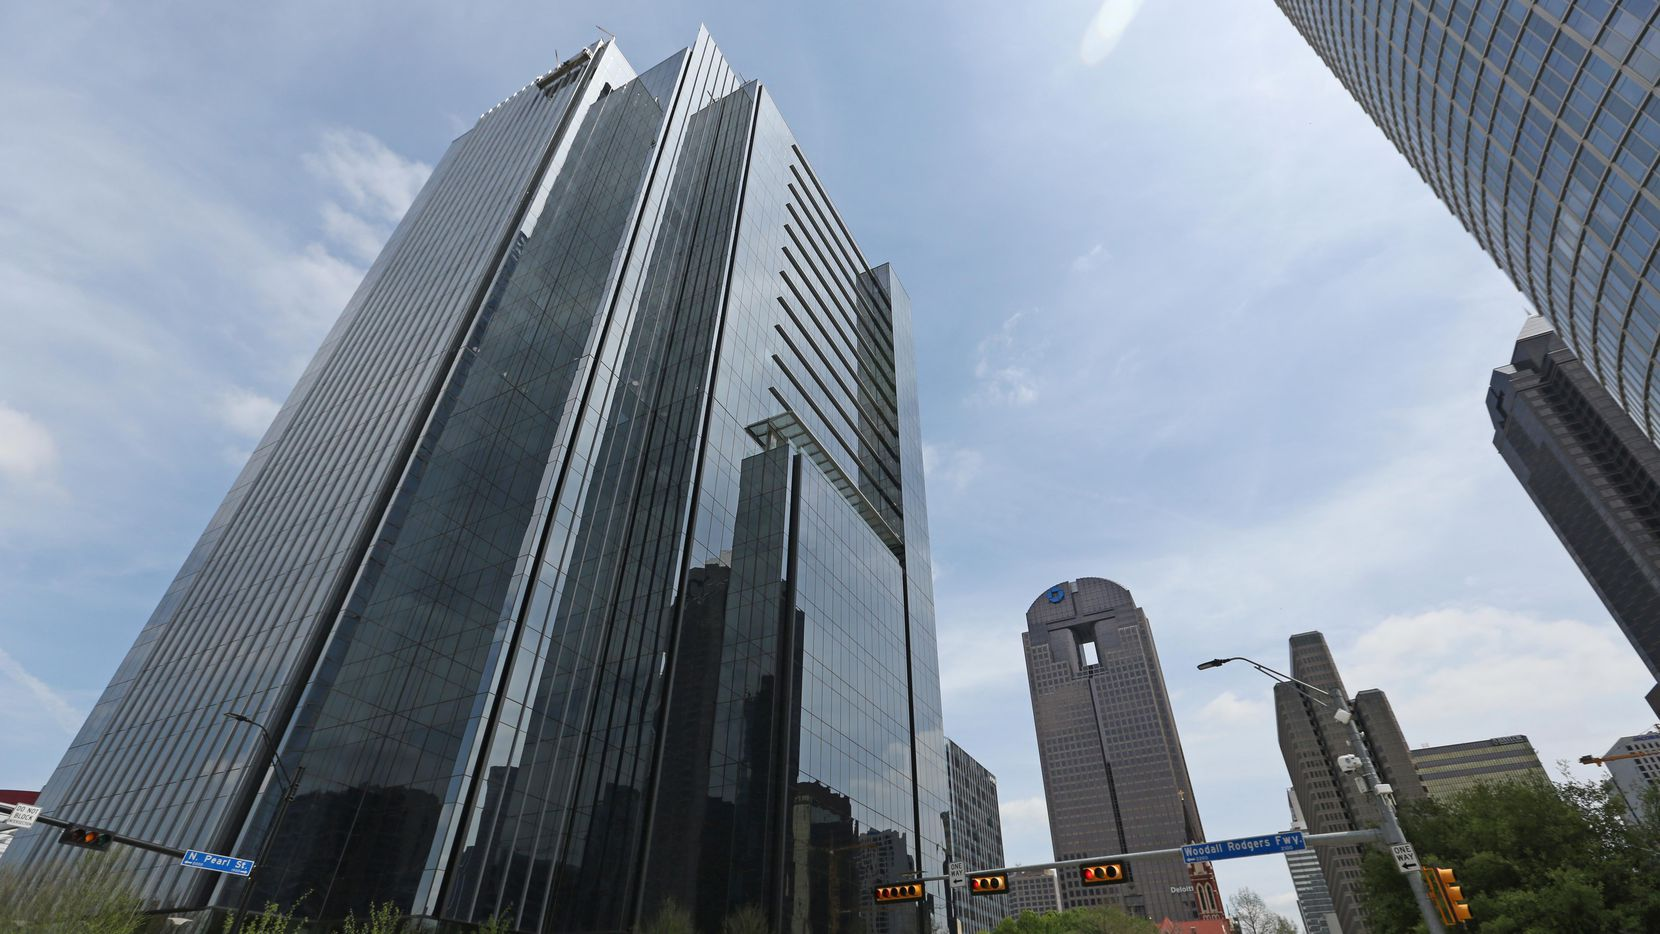 London-based DLA Piper has leased two floors in the new 1900 Pearl Tower, the newest downtown Dallas office building, at Pearl and Woodall Rodgers.